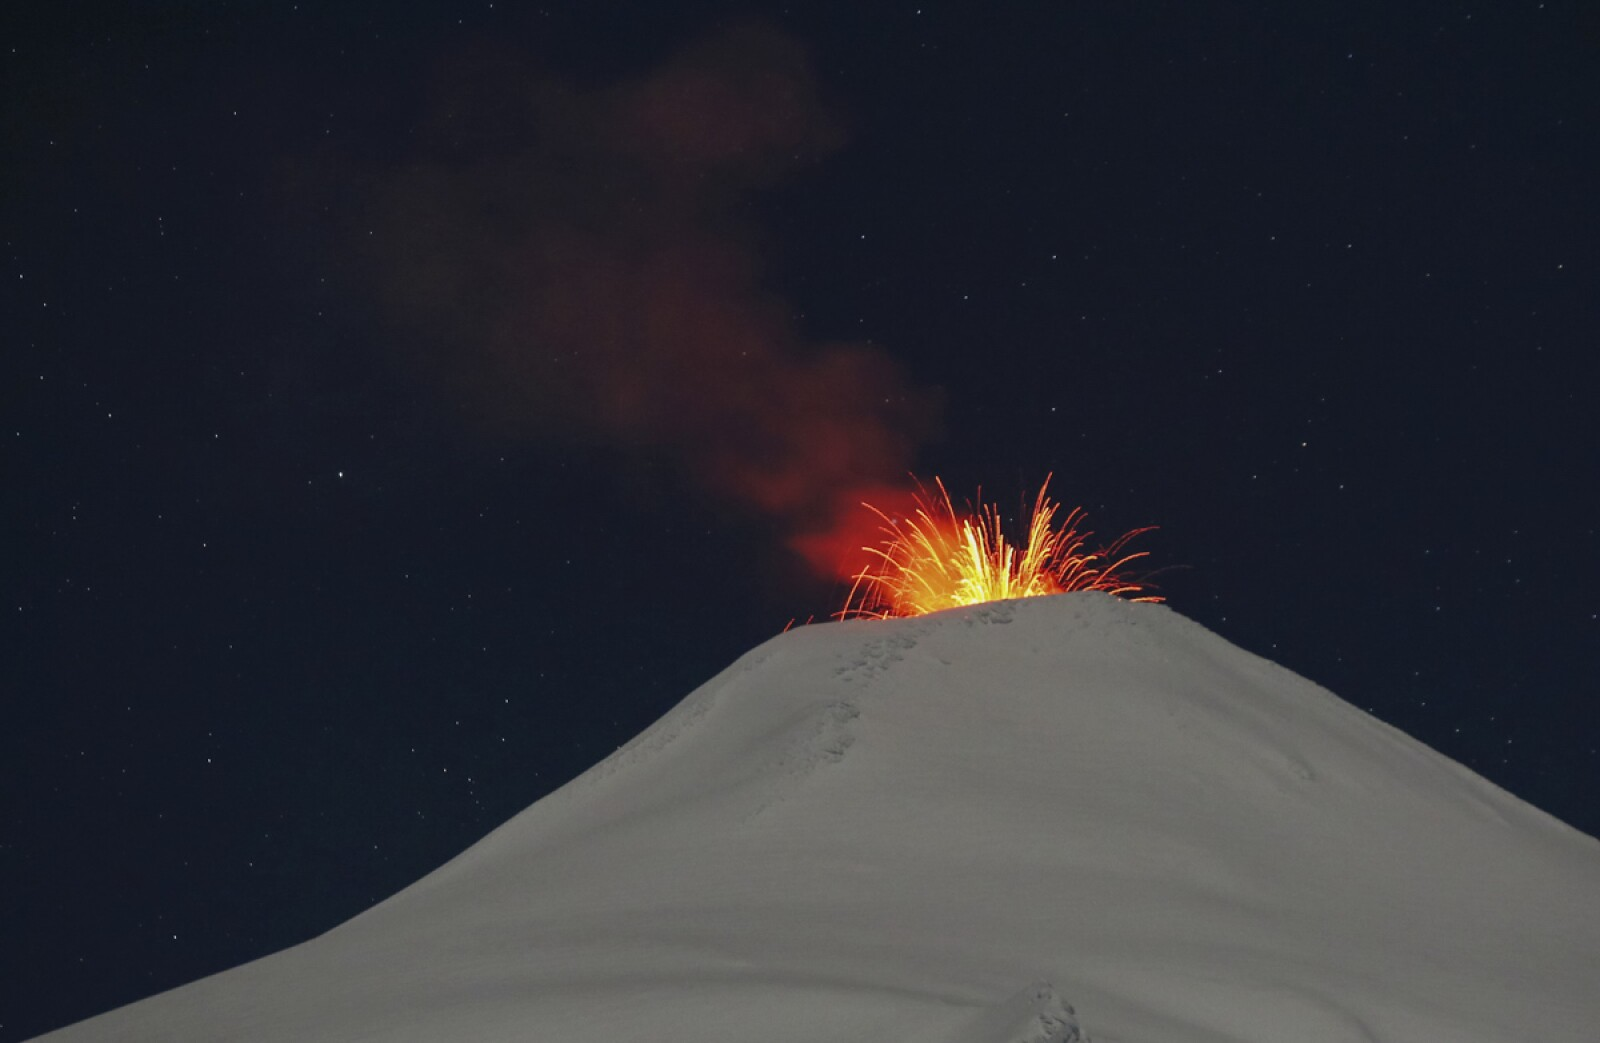 Villarrica volcano spews lava at night, seen from Pucon